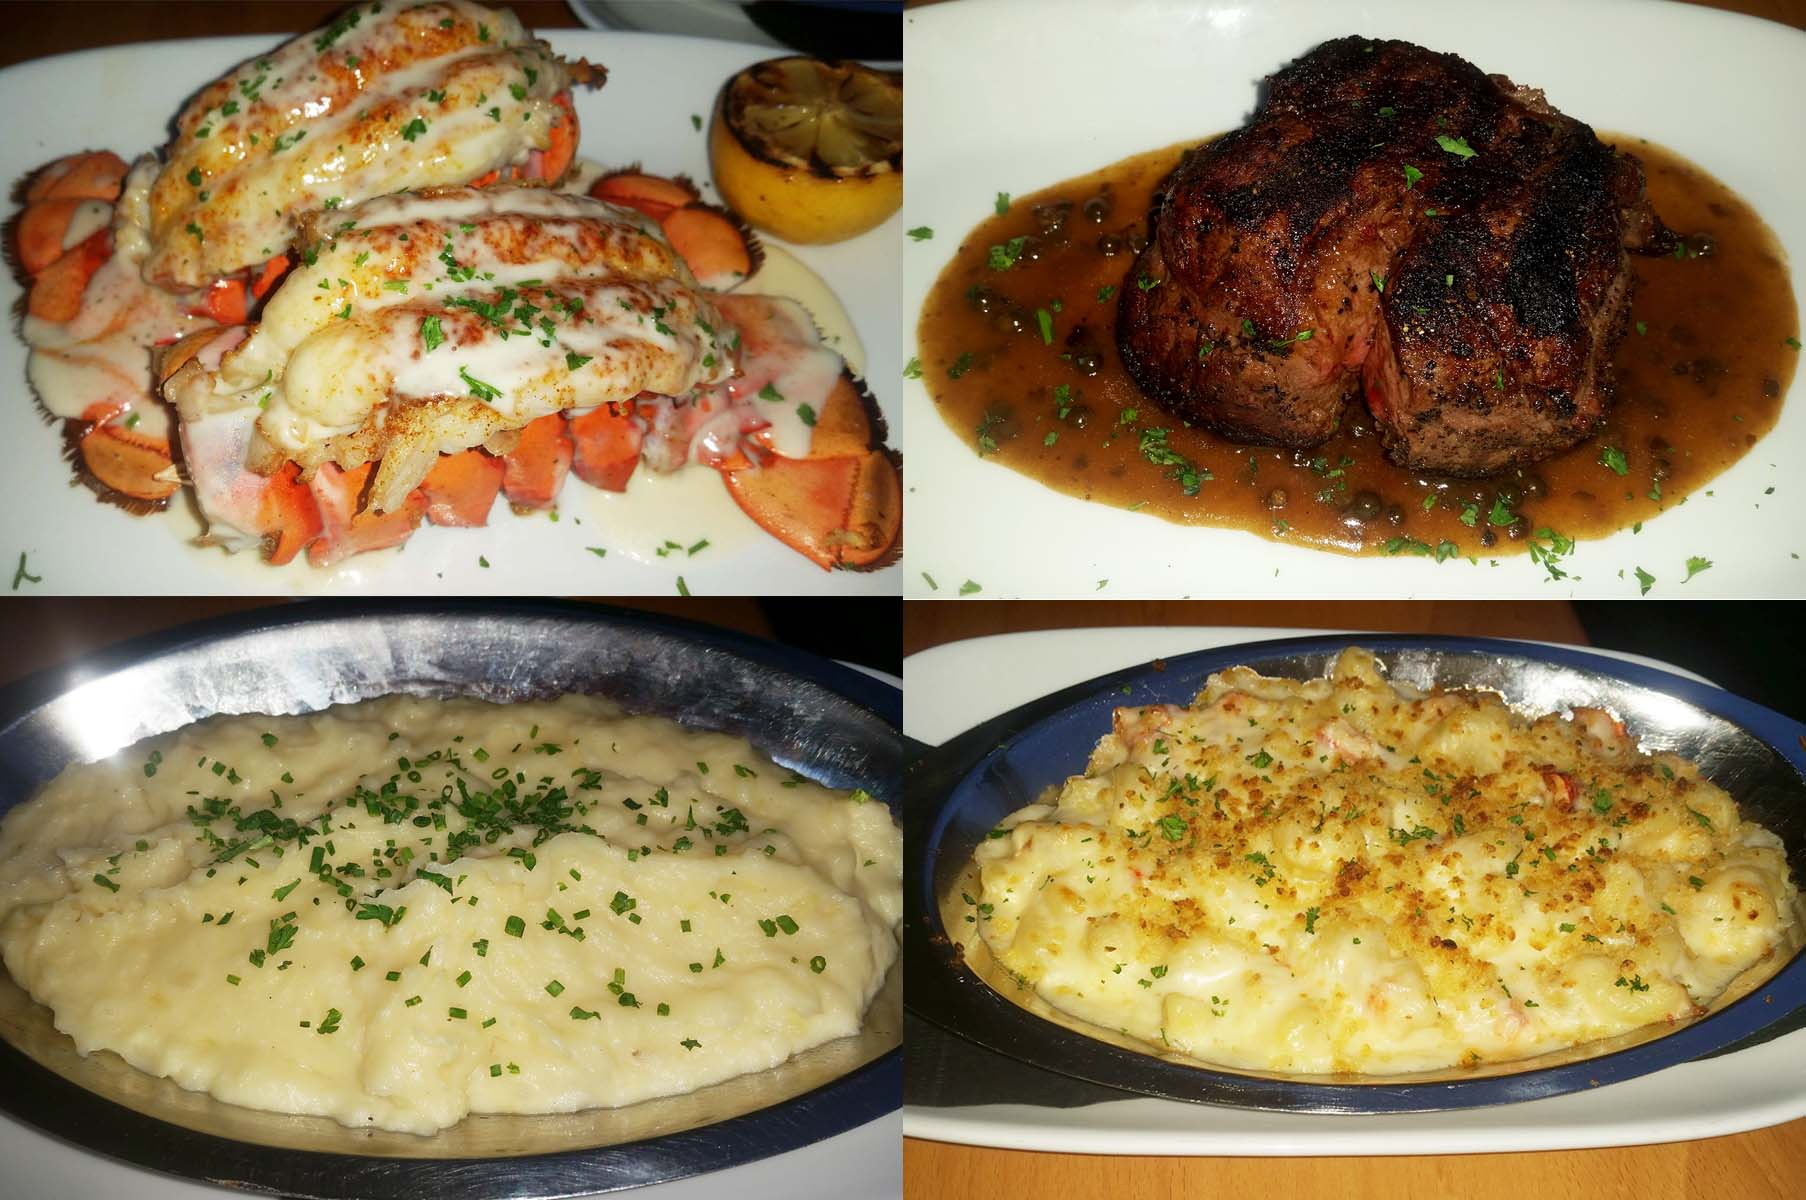 A la carte proteins include twin lobster tails (clockwise from top left) and filet mignon while sides include lobster mac n' cheese and gouda mashed potatoes. (Photos: Mark Heckathorn/DC on Heels)